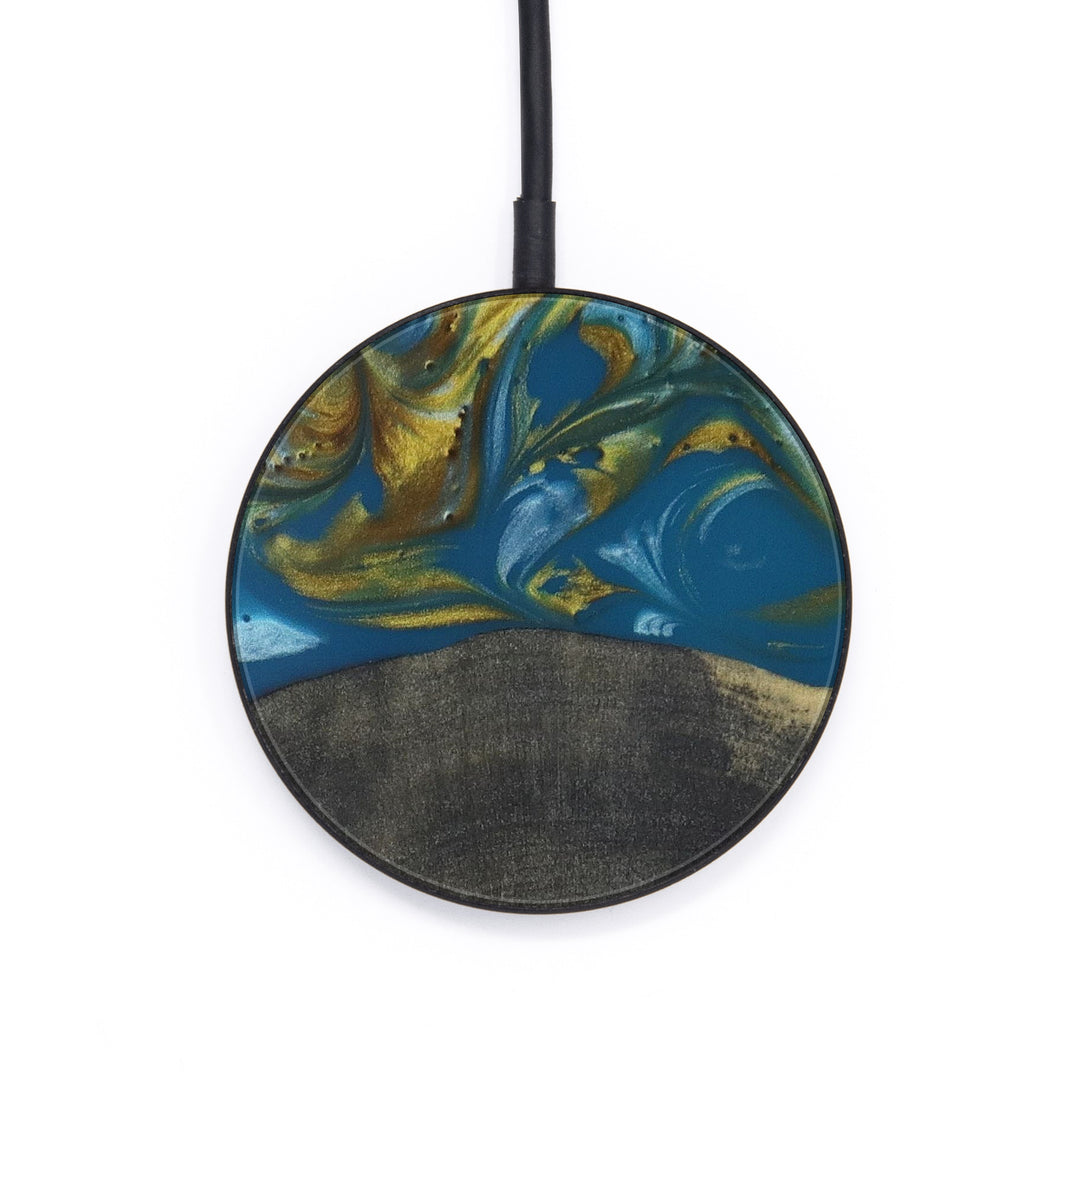 Circle Wood+Resin Wireless Charger - Shiv (Teal & Gold, 406010)